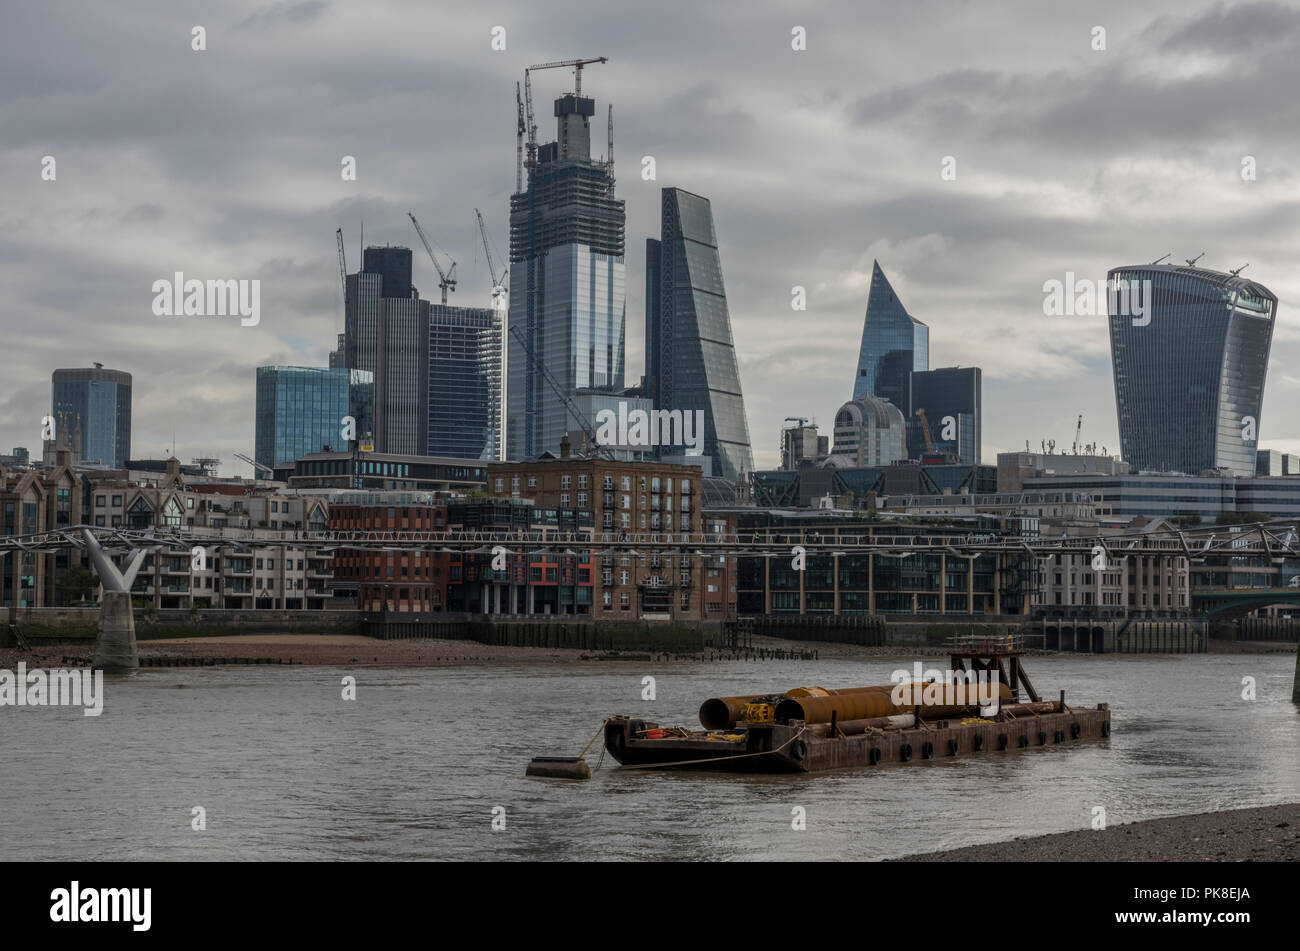 the city of London skyline on a grey and overcast day with a construction barge in the foreground. - Stock Image